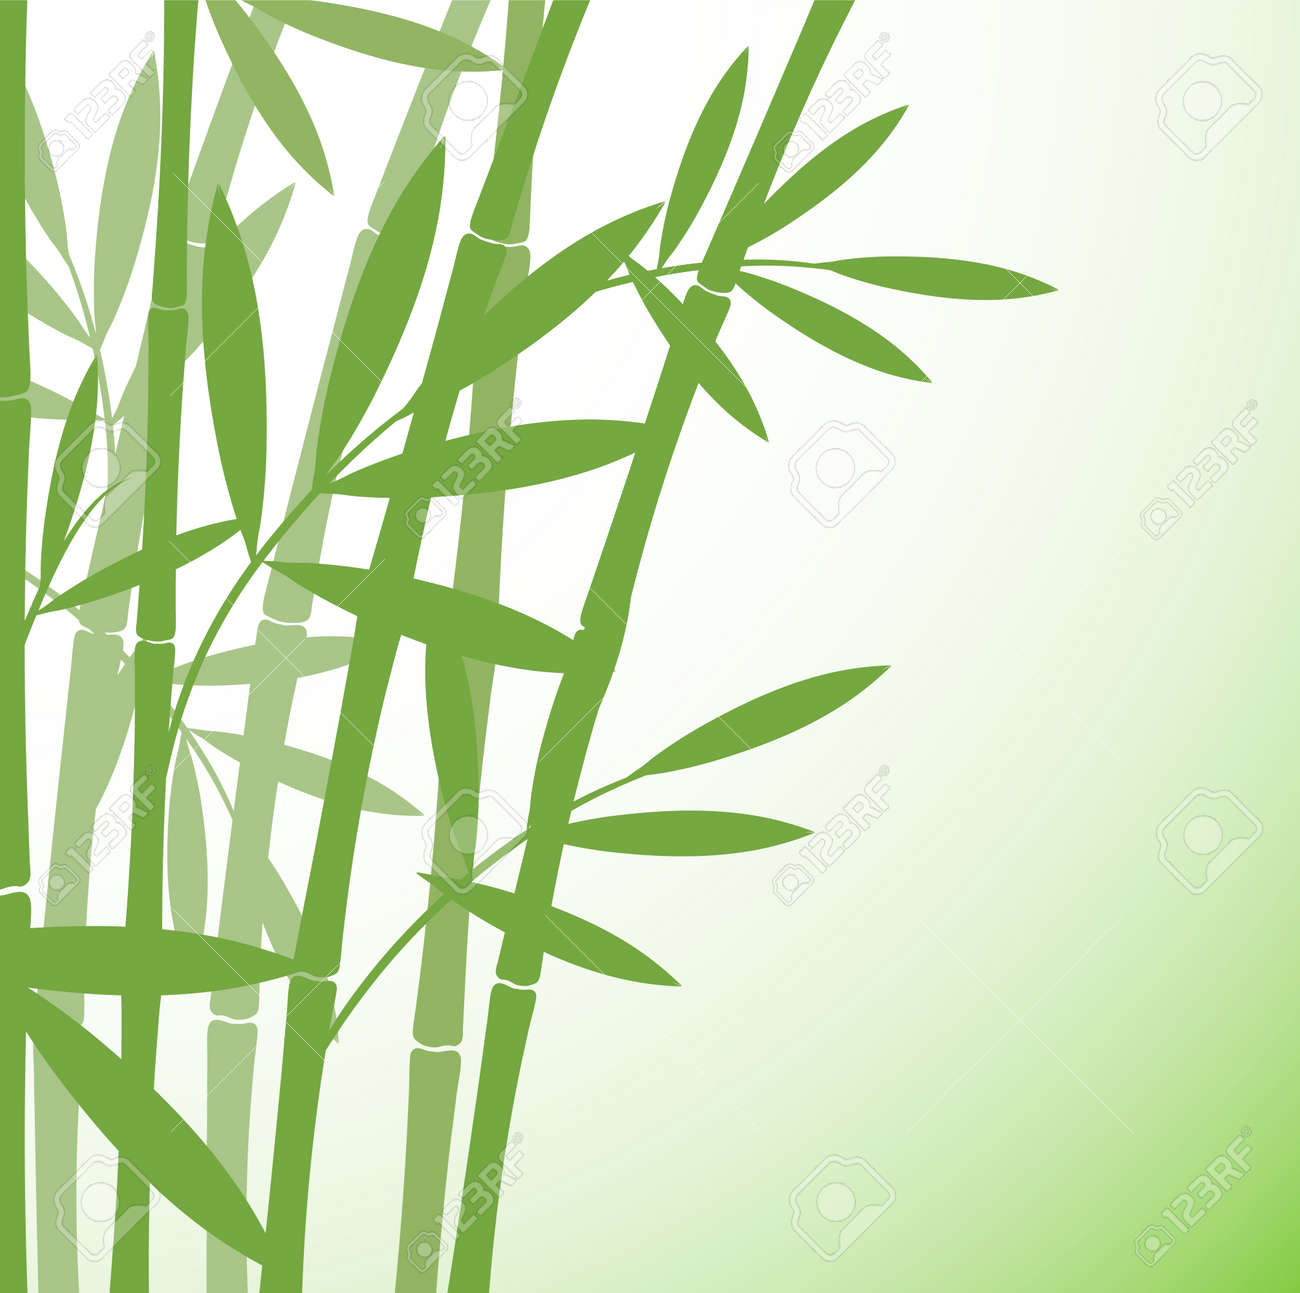 Chinese Or Japanese Bamboo Grass Oriental Wallpaper Stock Vector Royalty Free Cliparts Vectors And Stock Illustration Image 95551230